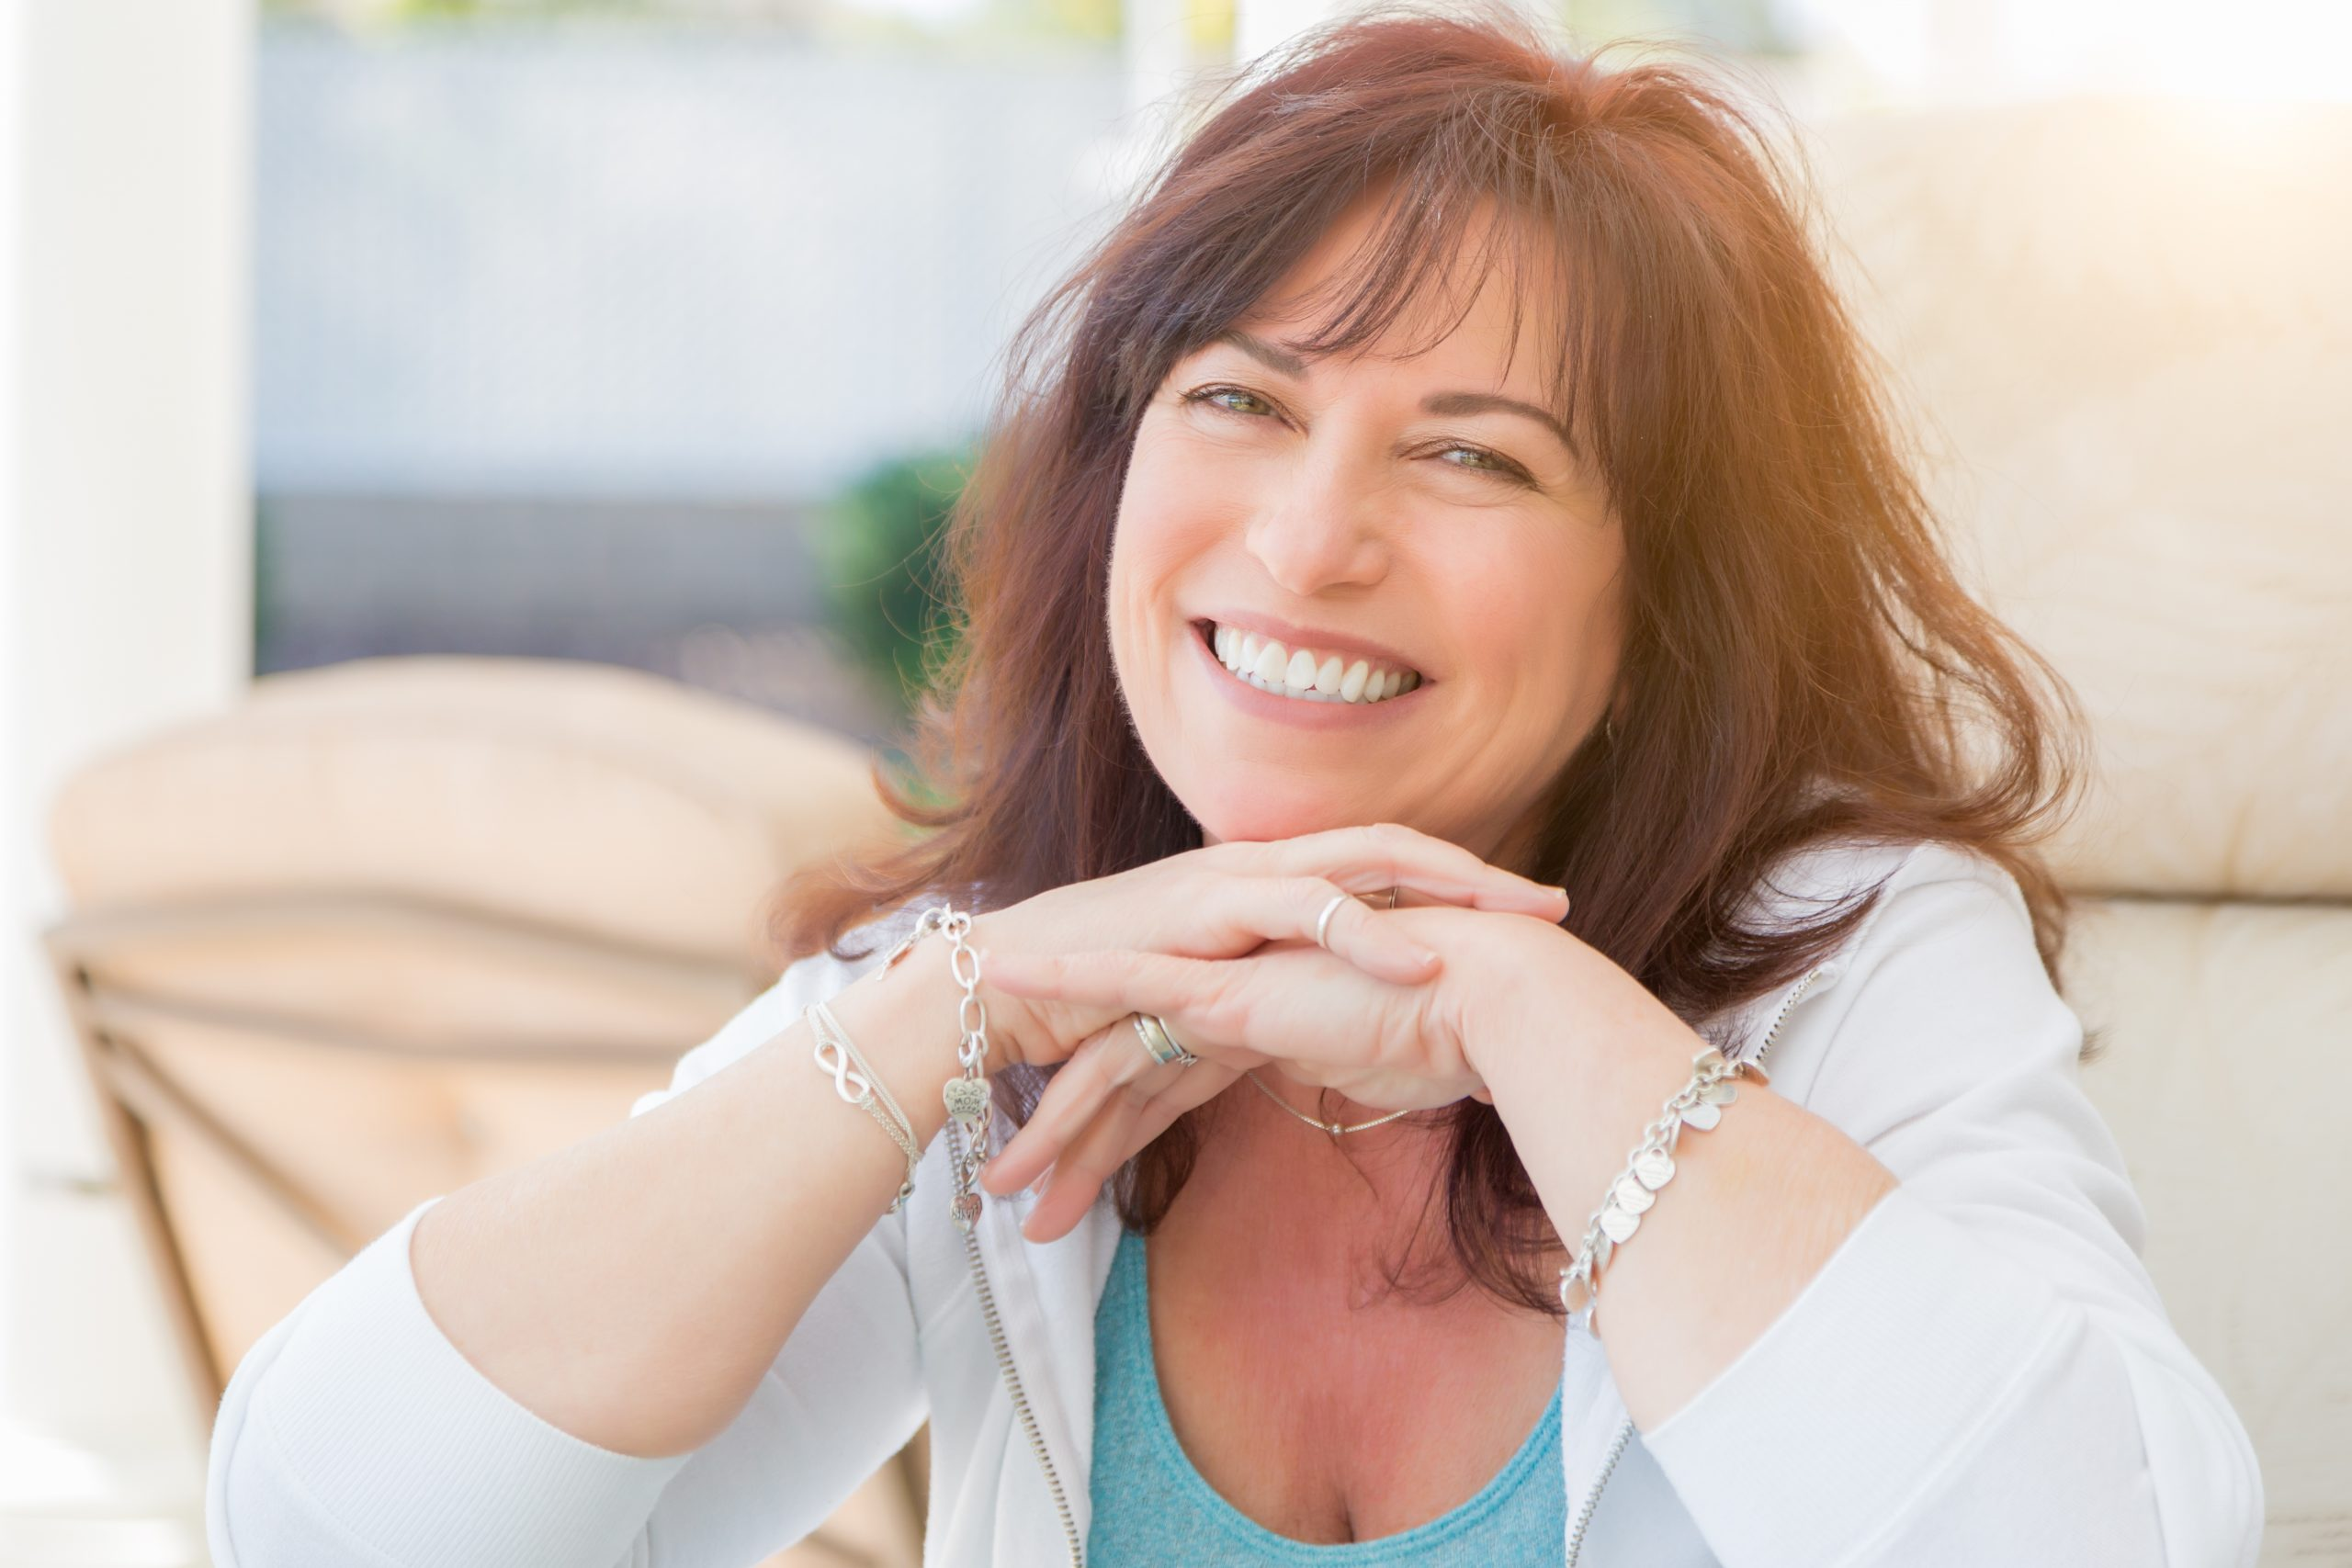 Middle aged women who had menopause treatment